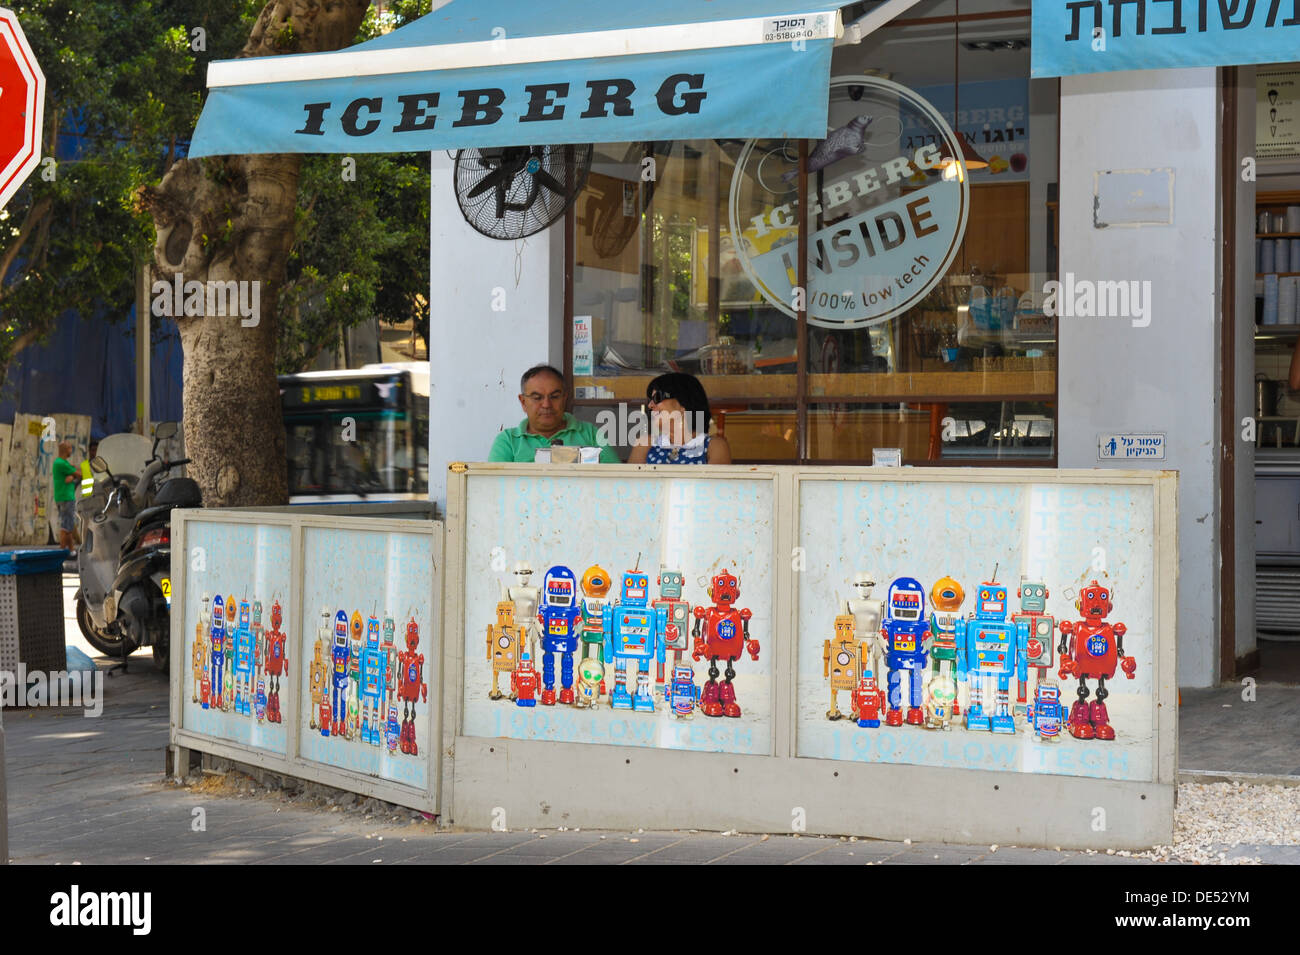 A couple is enjoying an ice-cream and coffee at an ice cream parlor in Rothschild Boulevard, Tel Aviv, Israel - Stock Image